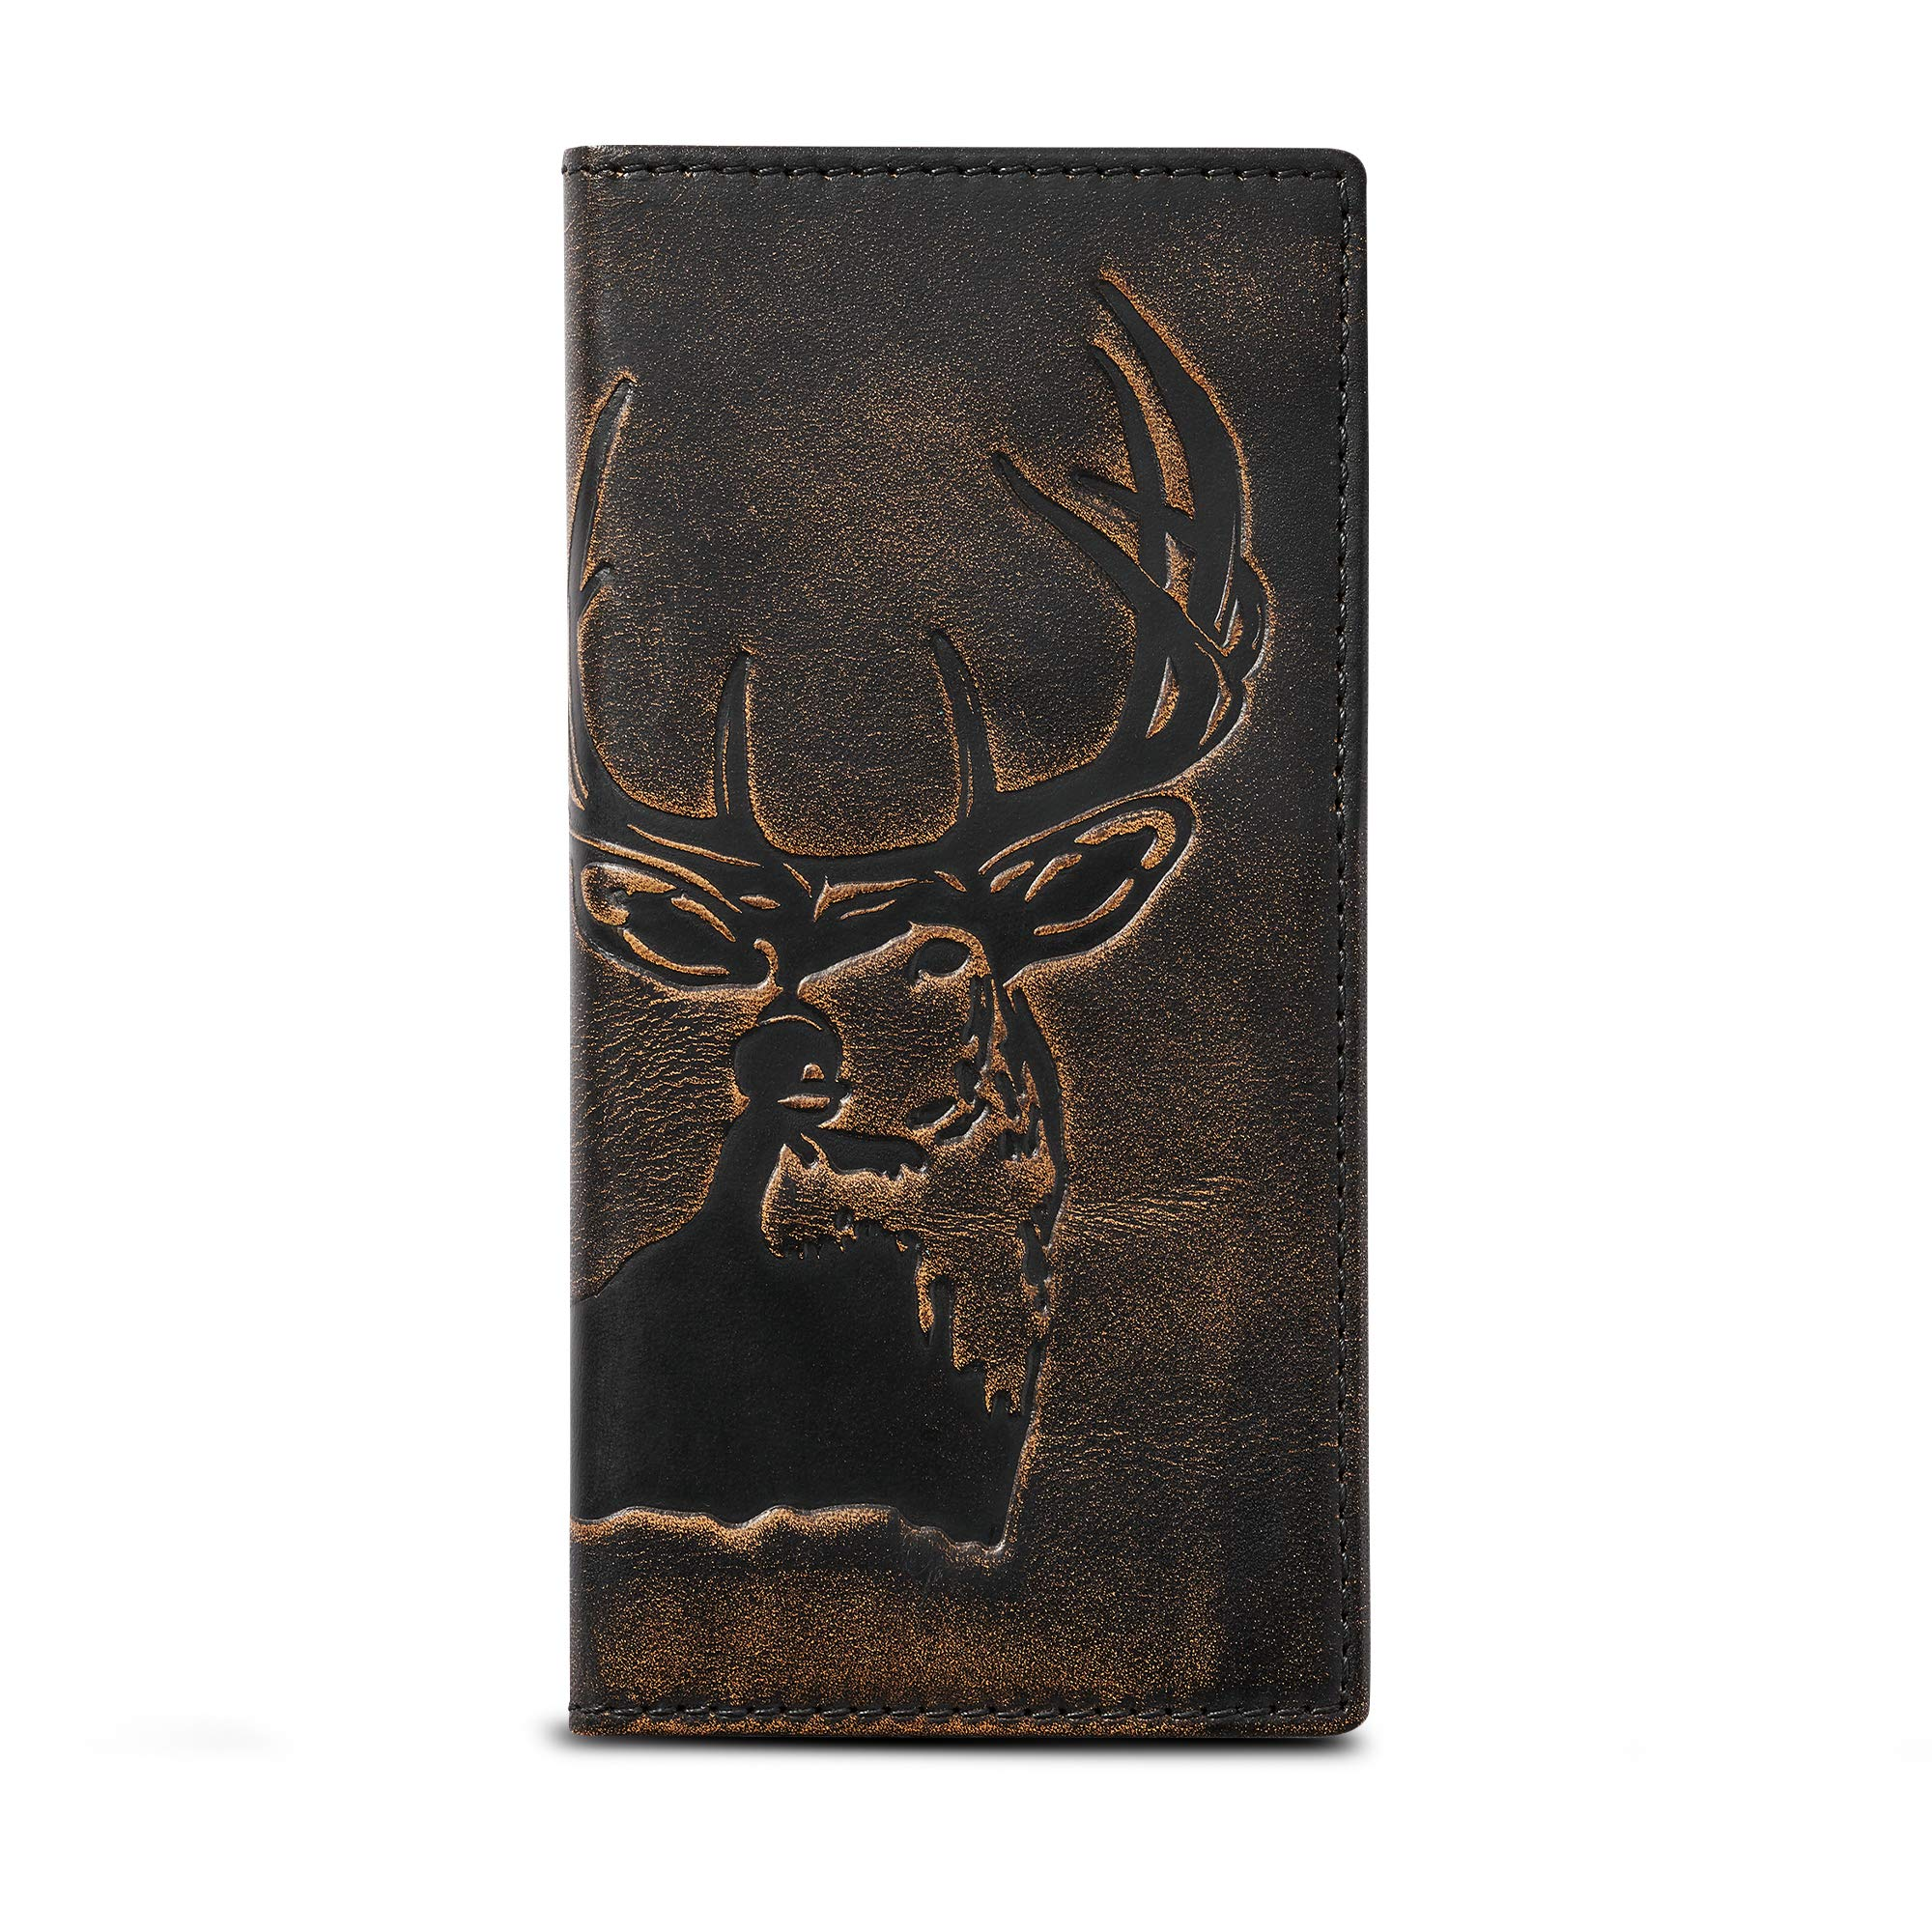 HOJ Co. DEER Long Bifold Wallet-Full Grain Leather With Hand Burnished Finish-Mens TALL Wallet-Deer Hunter Gift-Rodeo Wallet by House of Jack Co.